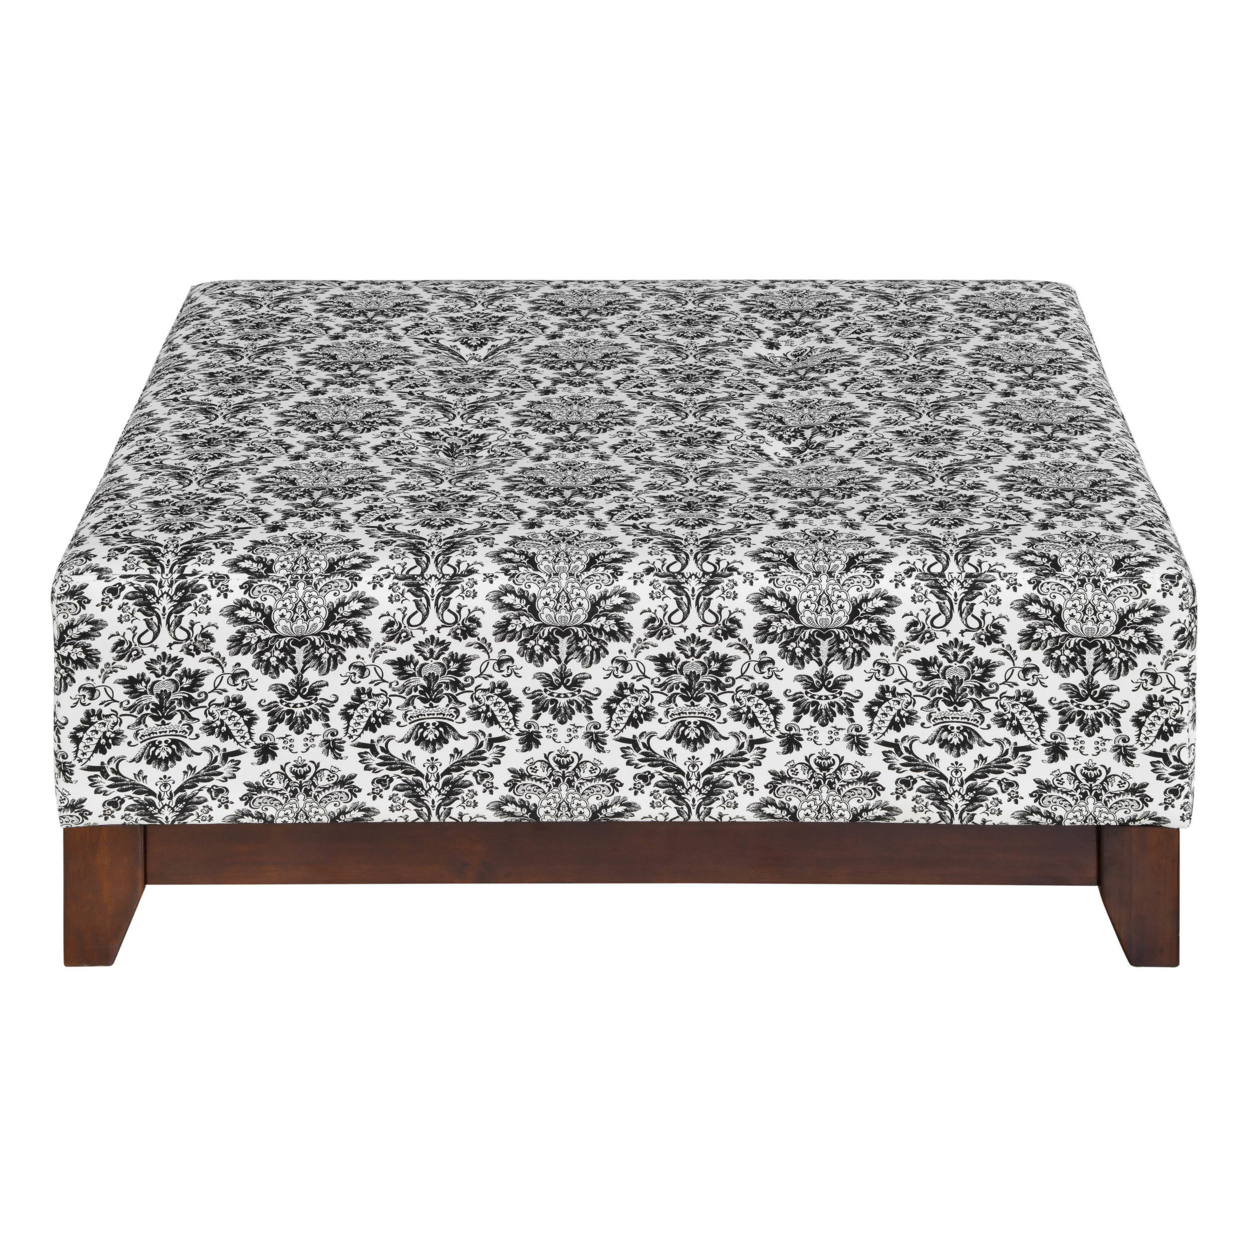 Ada Large Black and Ivory Printed Ottoman